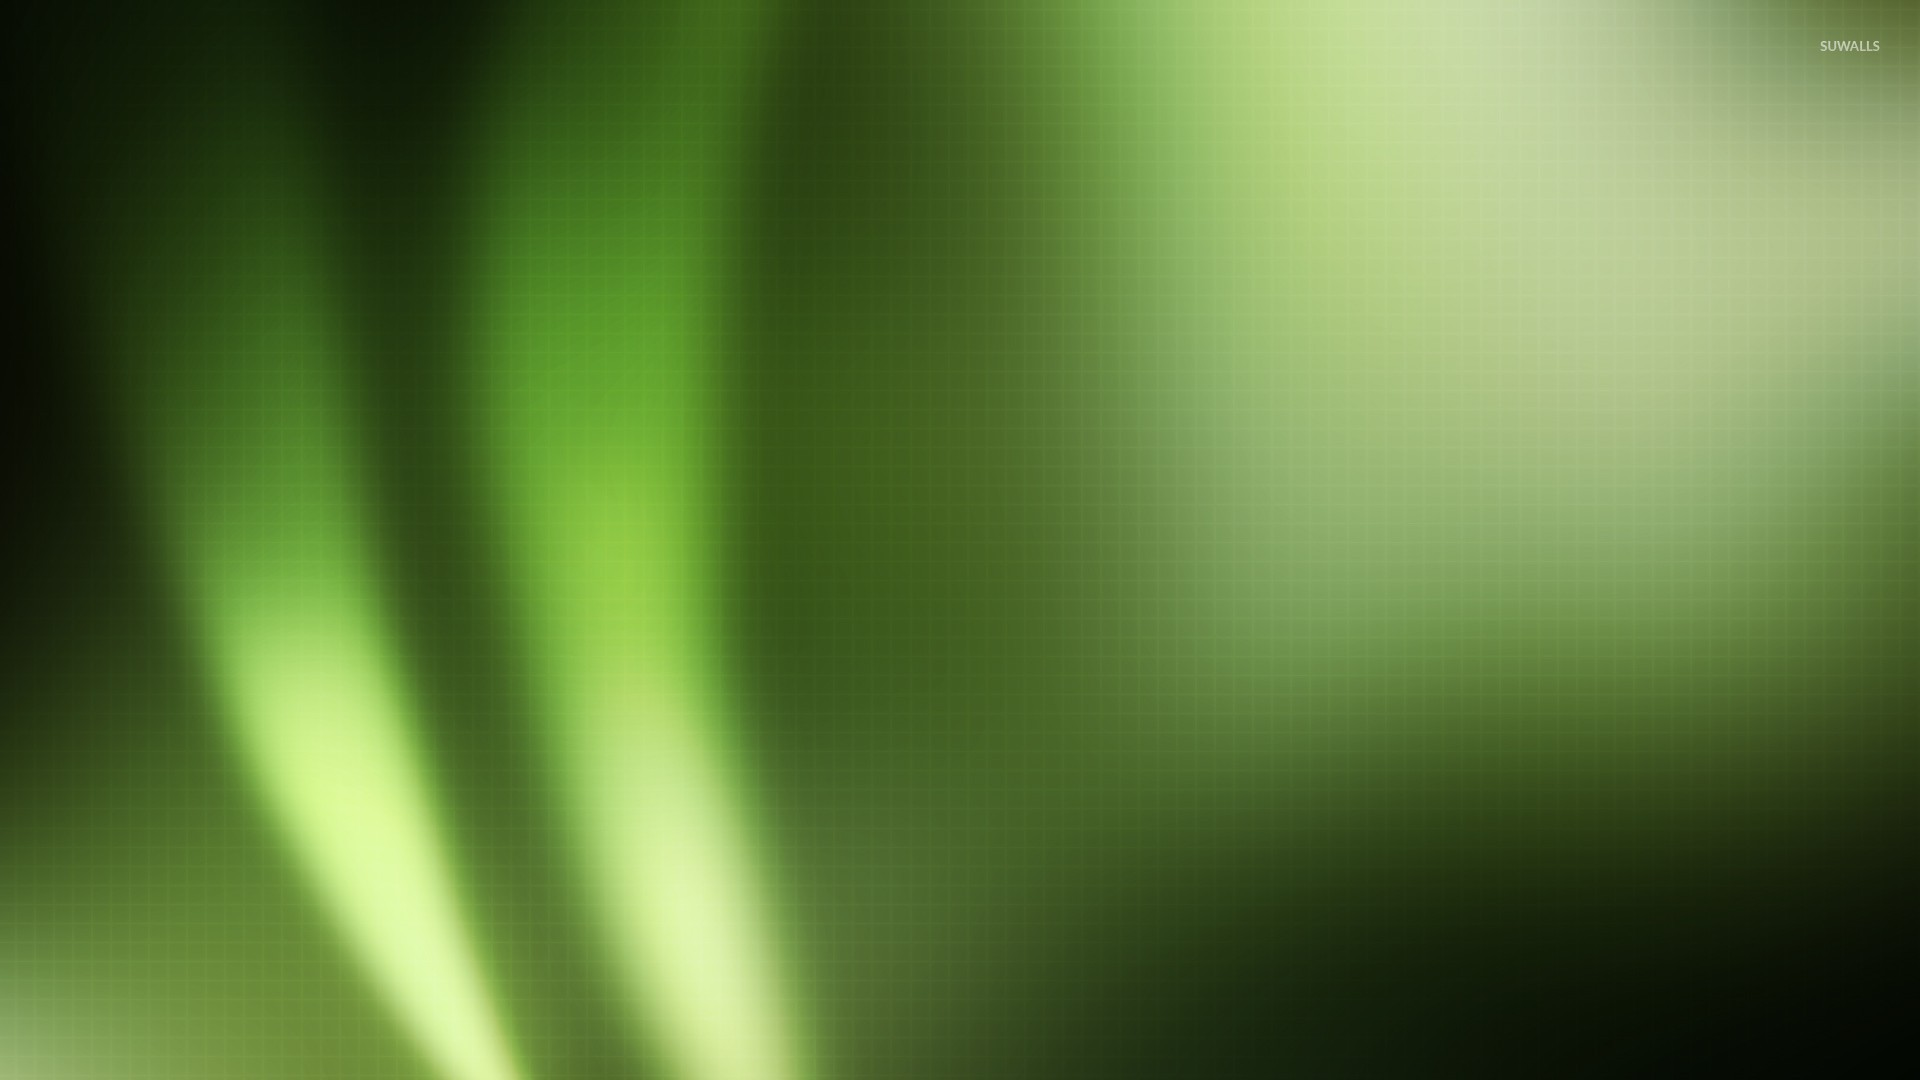 Light flares on green square pattern wallpaper - Abstract